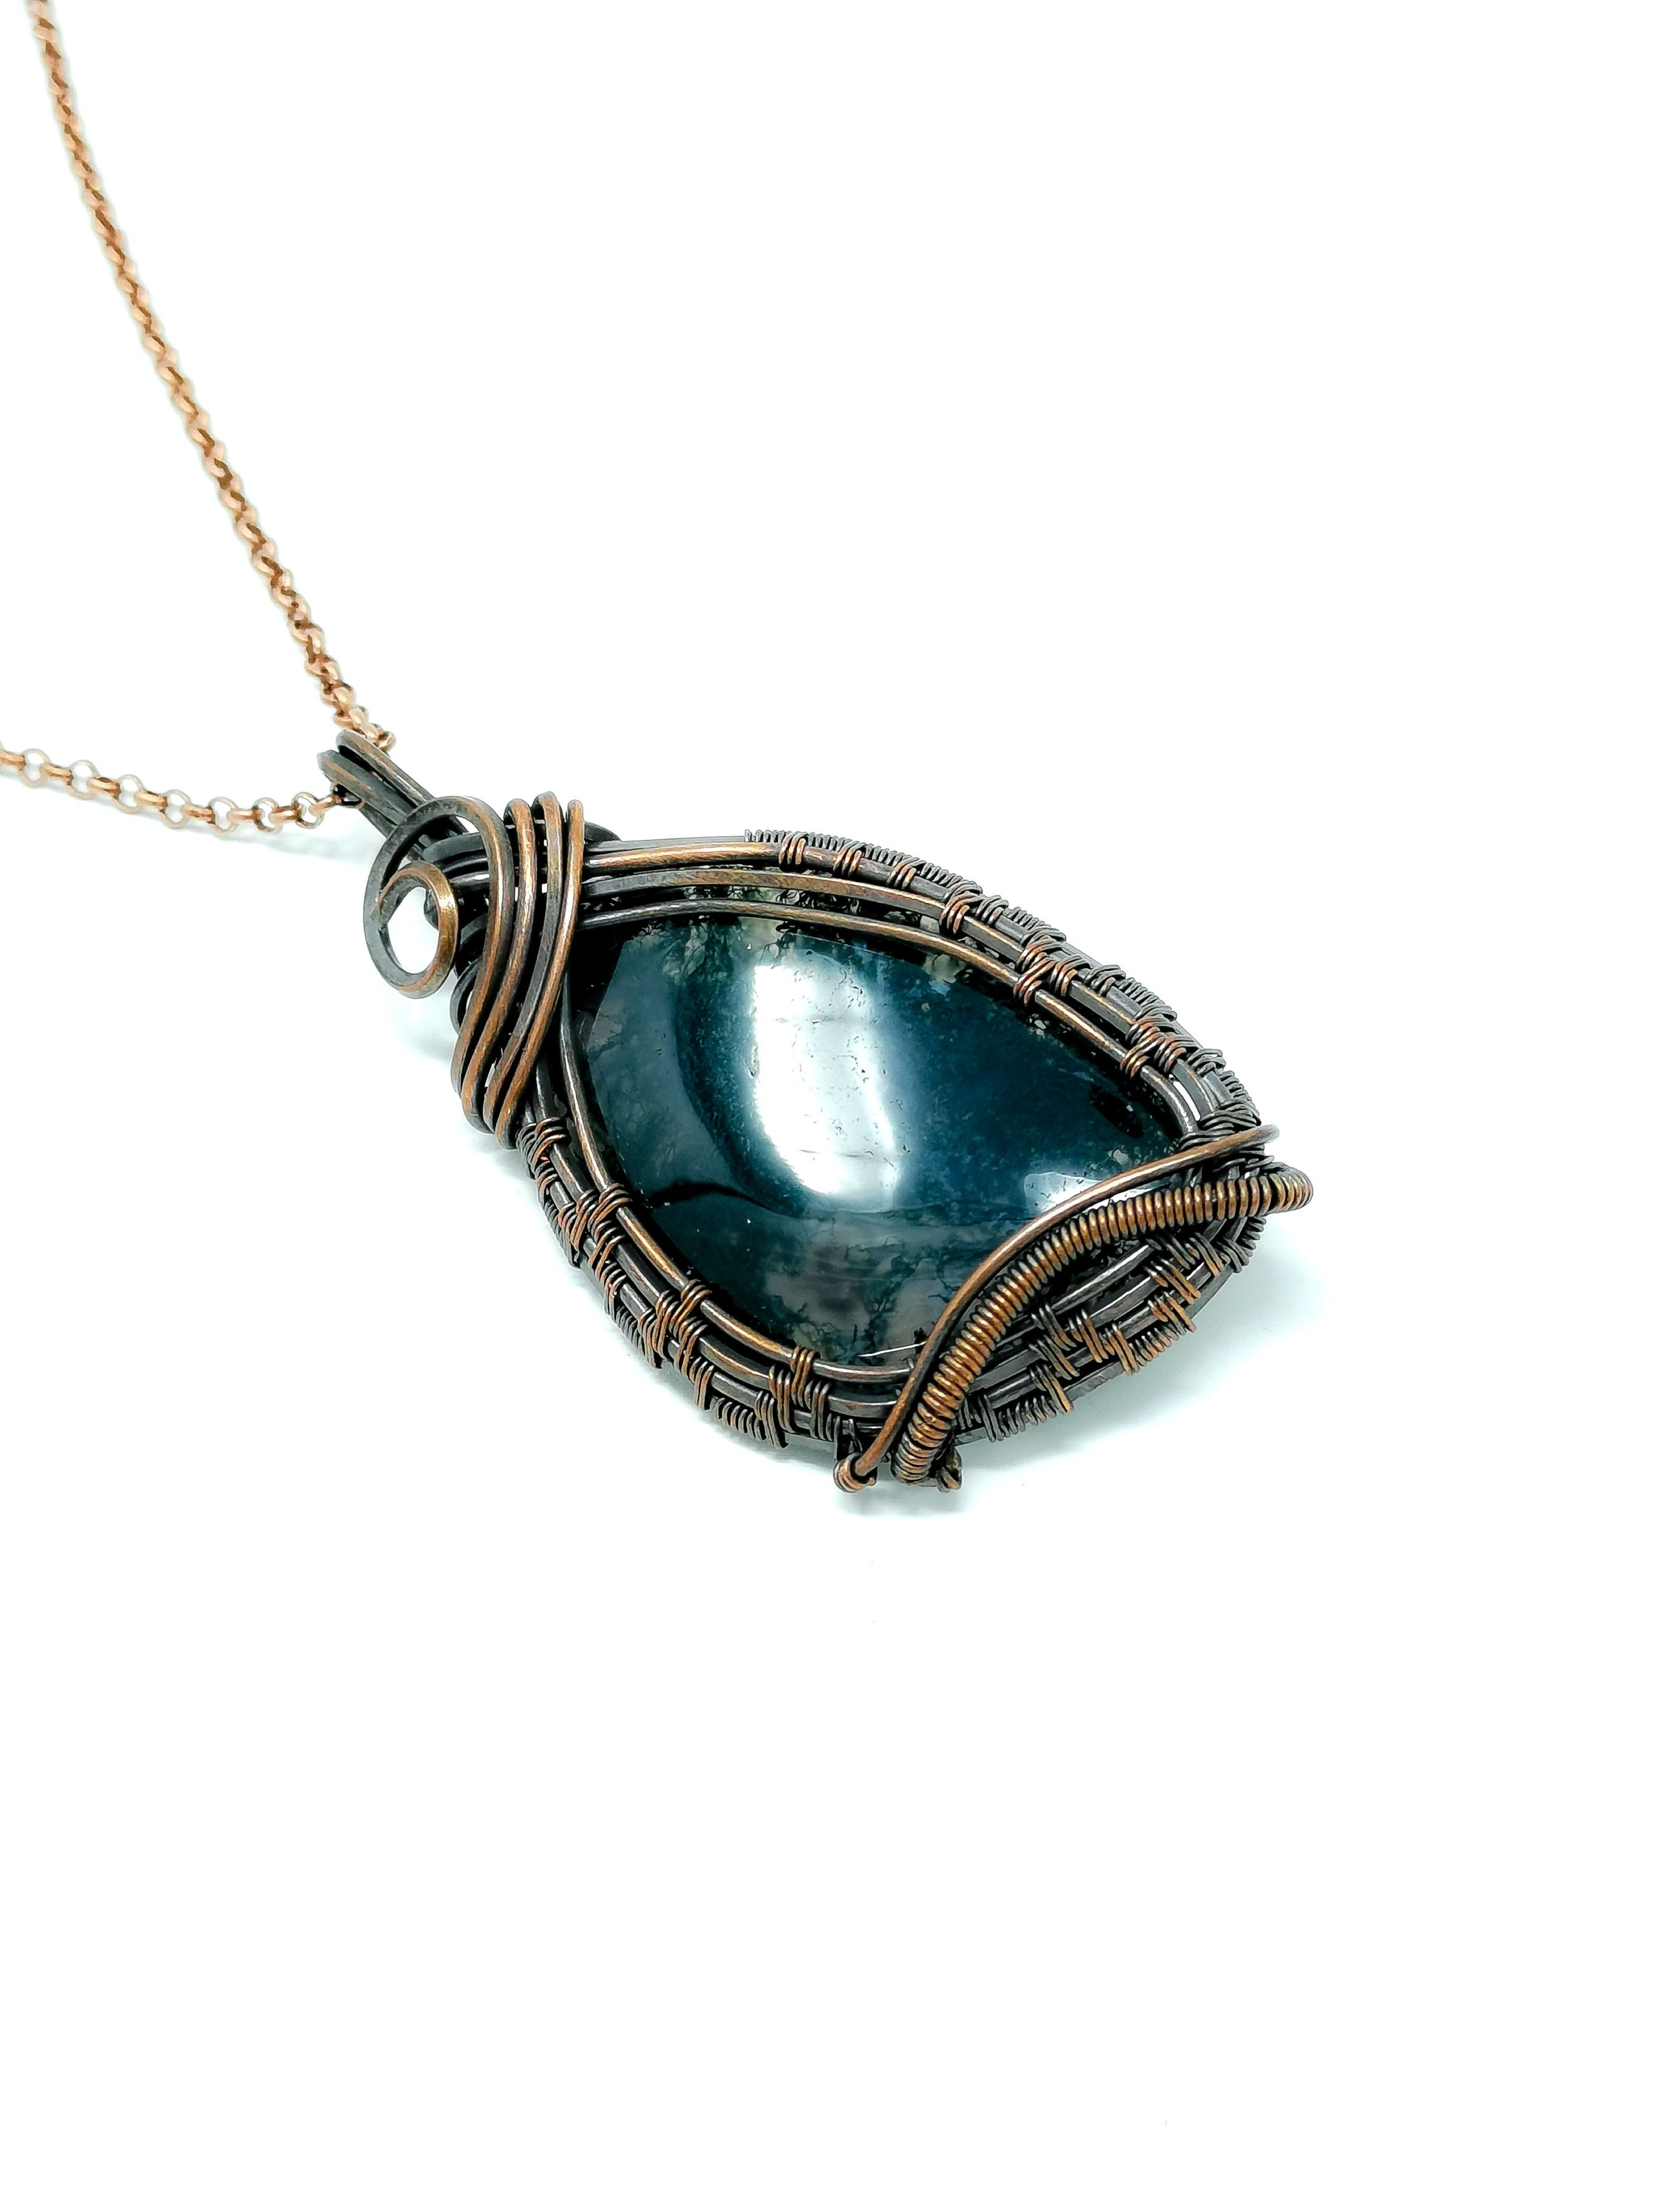 Moss Agate Pendant Fantasy Jewelry Large Necklace Gift With Meaning Agate Pendant Large Necklace Gift Necklace